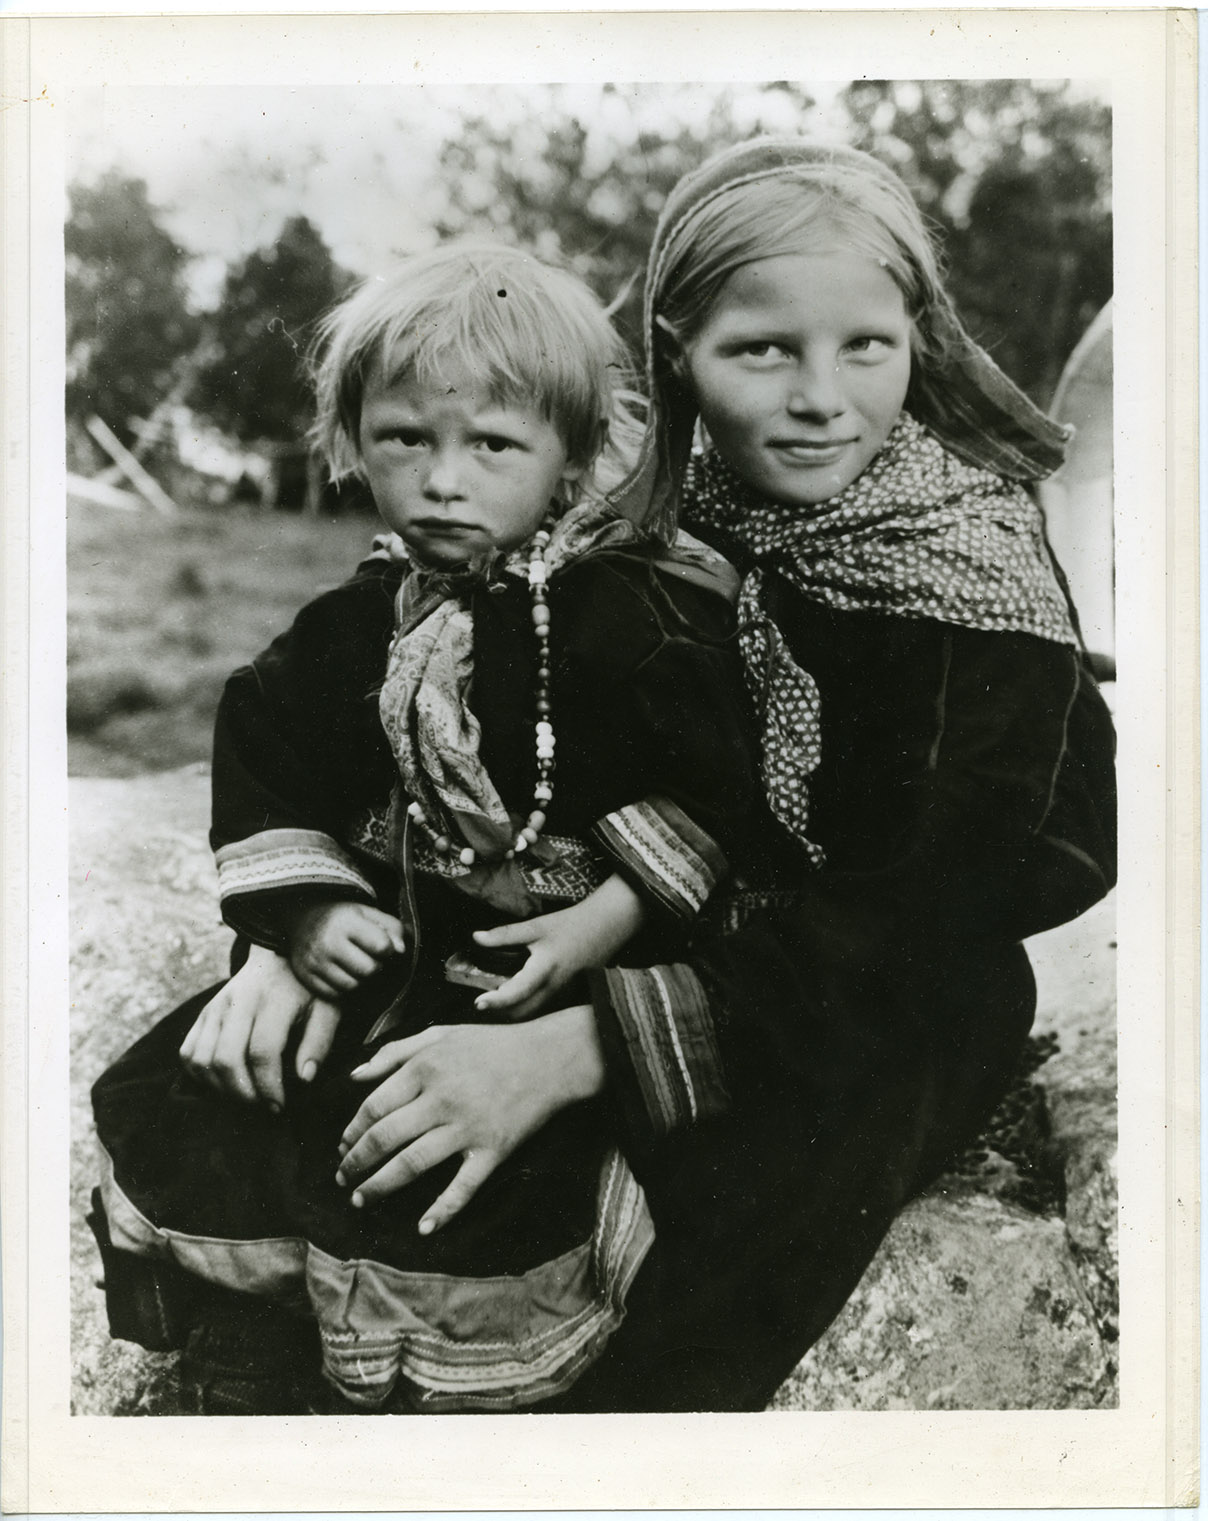 Norwegian Information Service Photographs of Sami (Lapp) People image